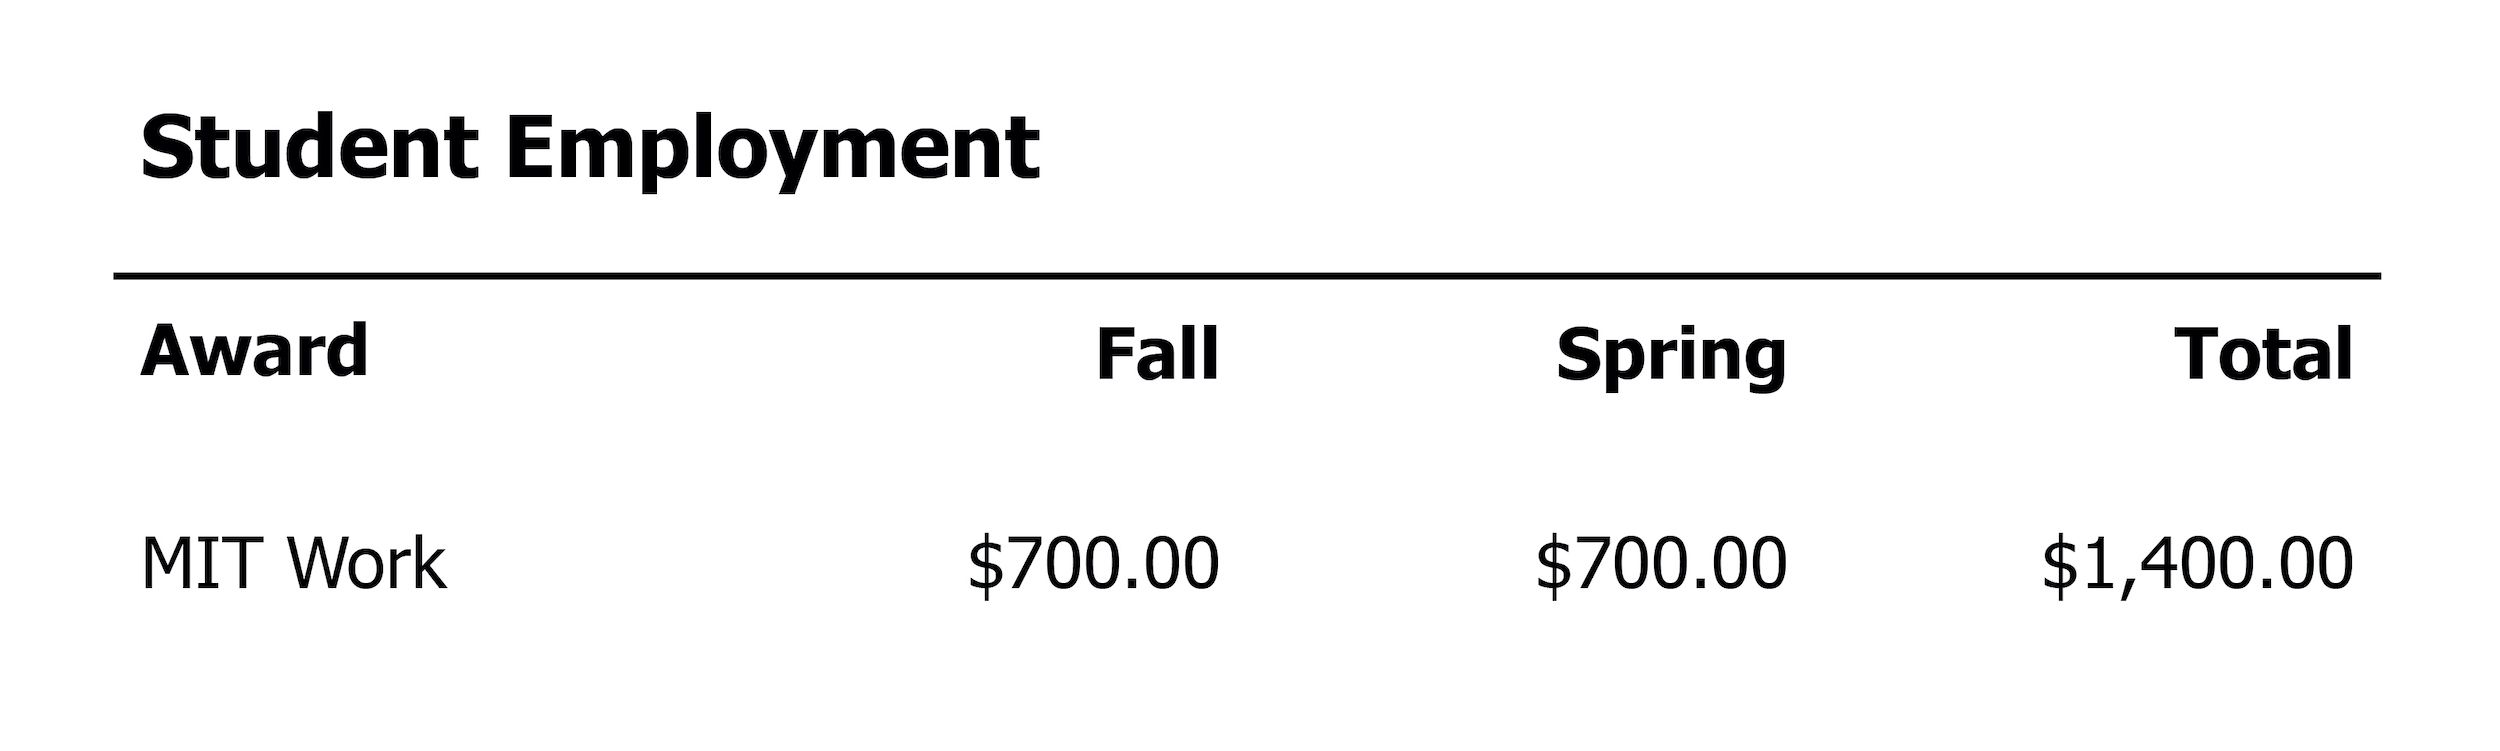 Student employment chart from a sample financial aid award letter.